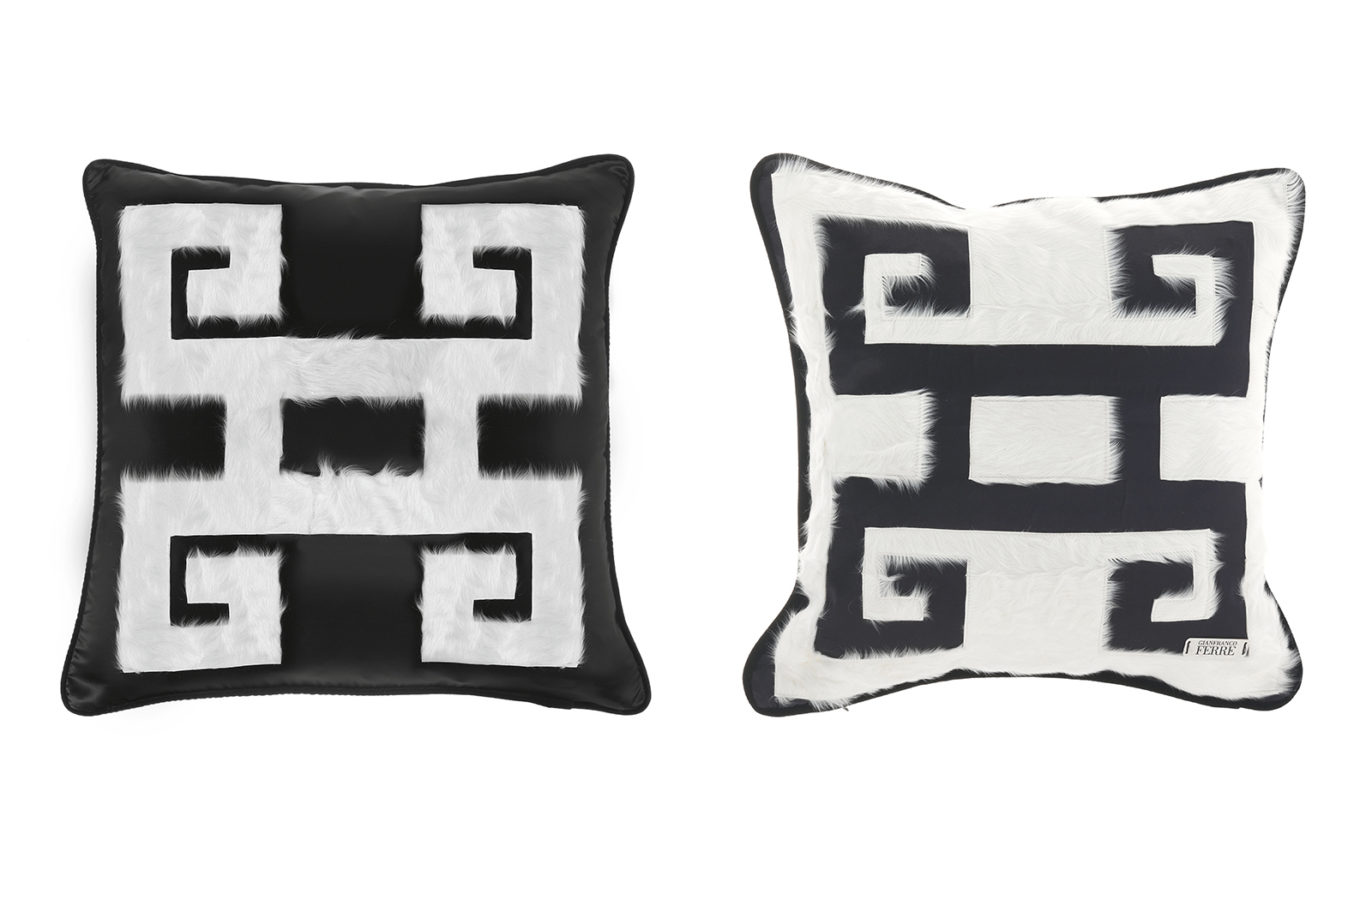 Gianfranco Ferre Home Greek Key Cushion 01